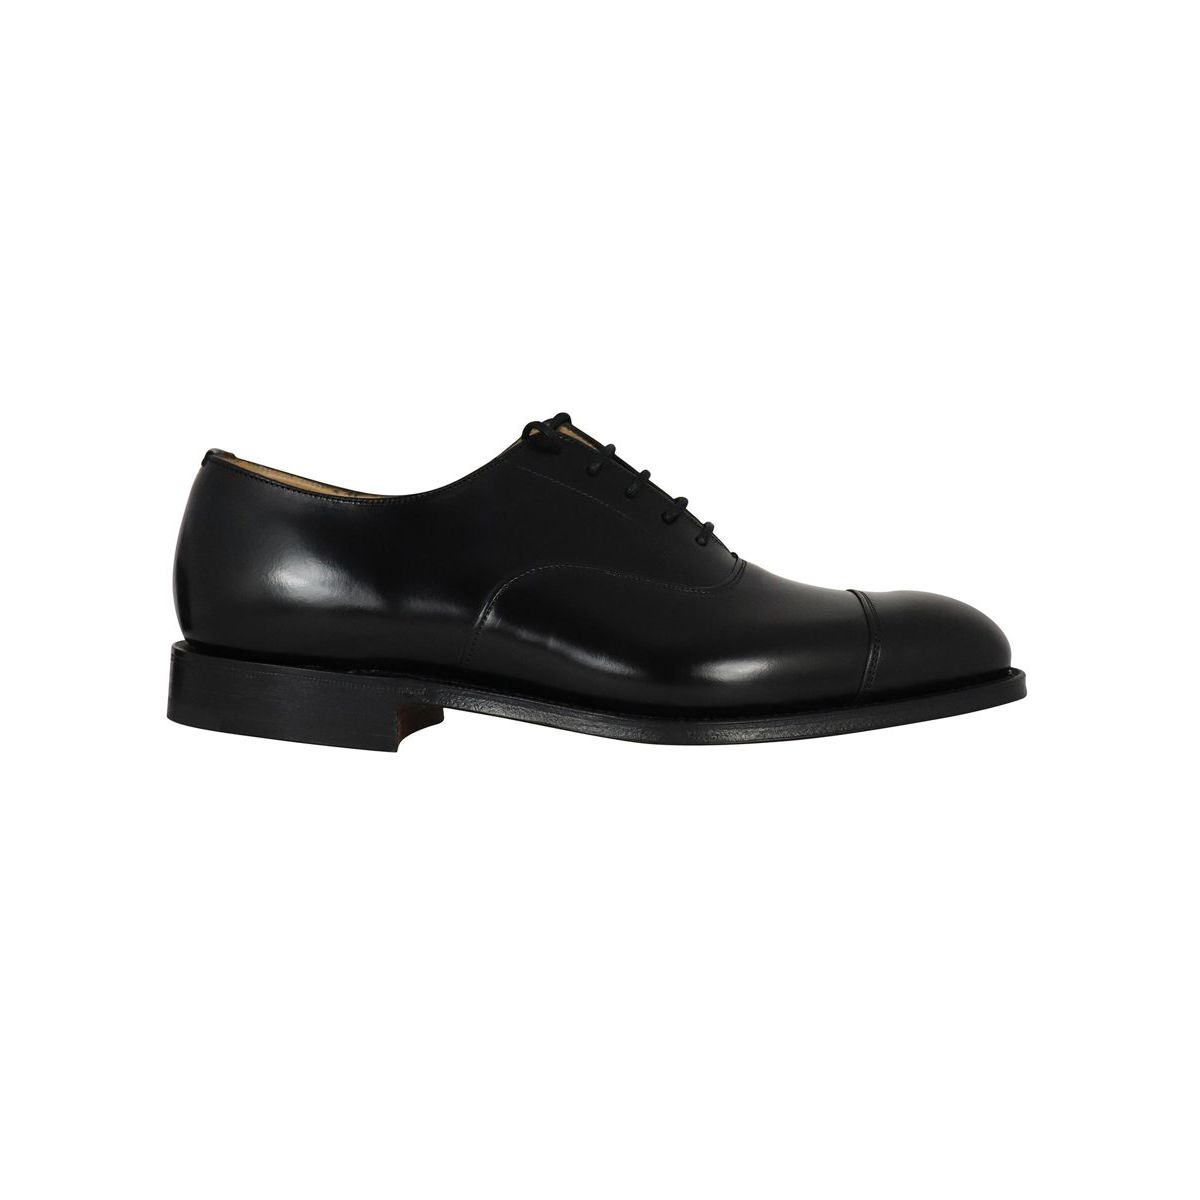 Consul 173 Oxford lace up shoes Black Church's